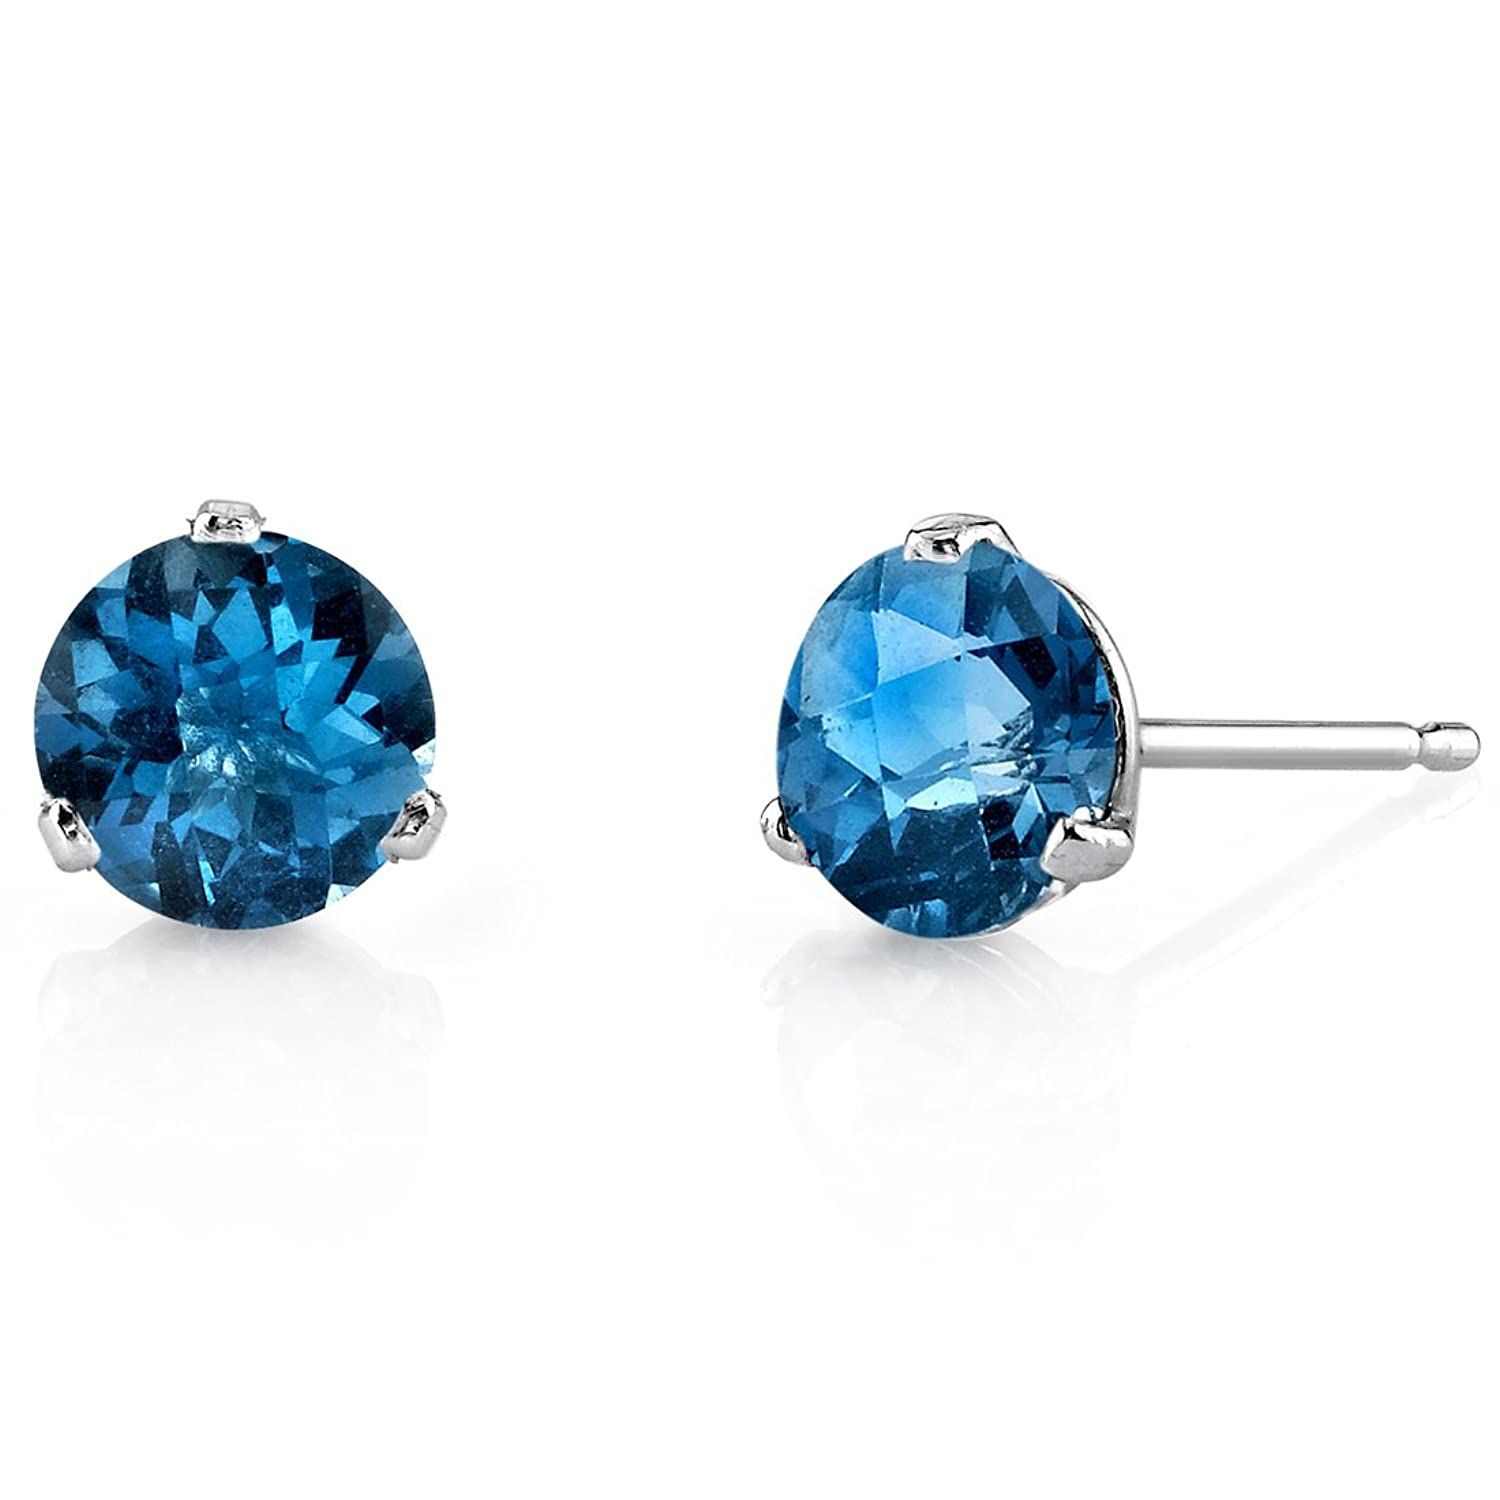 14 Kt White Gold Martini Style Round Cut 2.00 Carats London Blue Topaz Stud Earrings